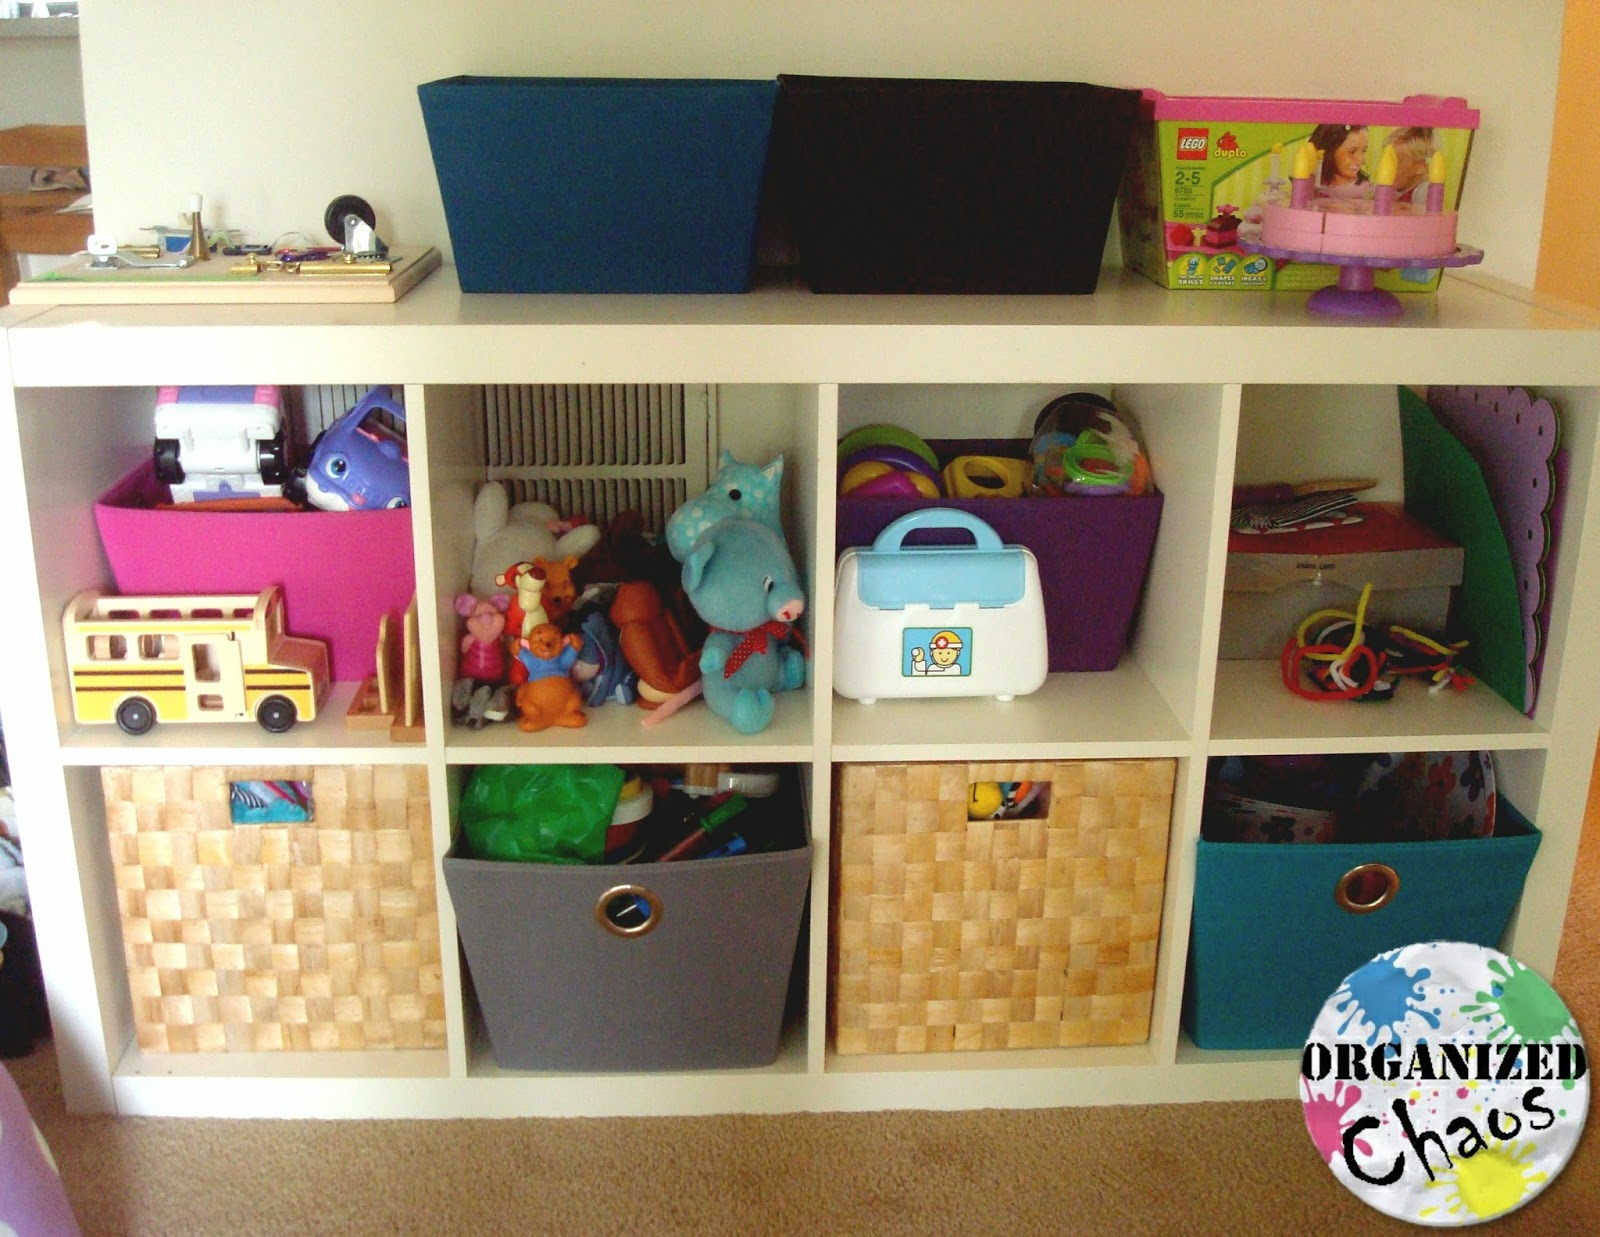 I Love Using Bins To Store Toys  Easy Cleanup, Attractive, And Easy To Find  What You Need  But A Few Of The Bins Were Getting Overcrowded And,  Therefore, ... Part 45